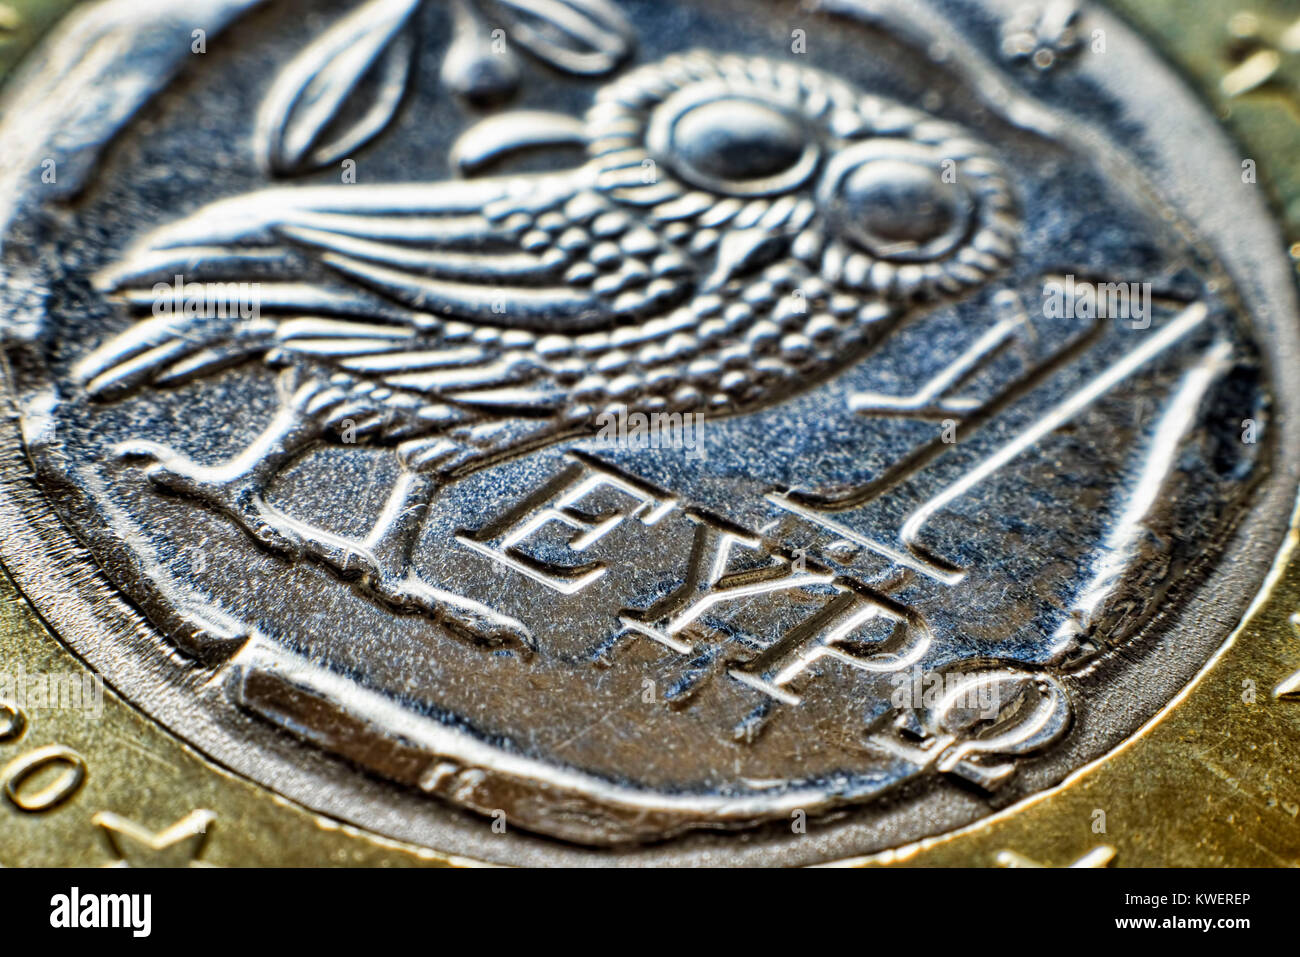 Greek euro-coin one, Griechische Ein-Euro-Muenze - Stock Image